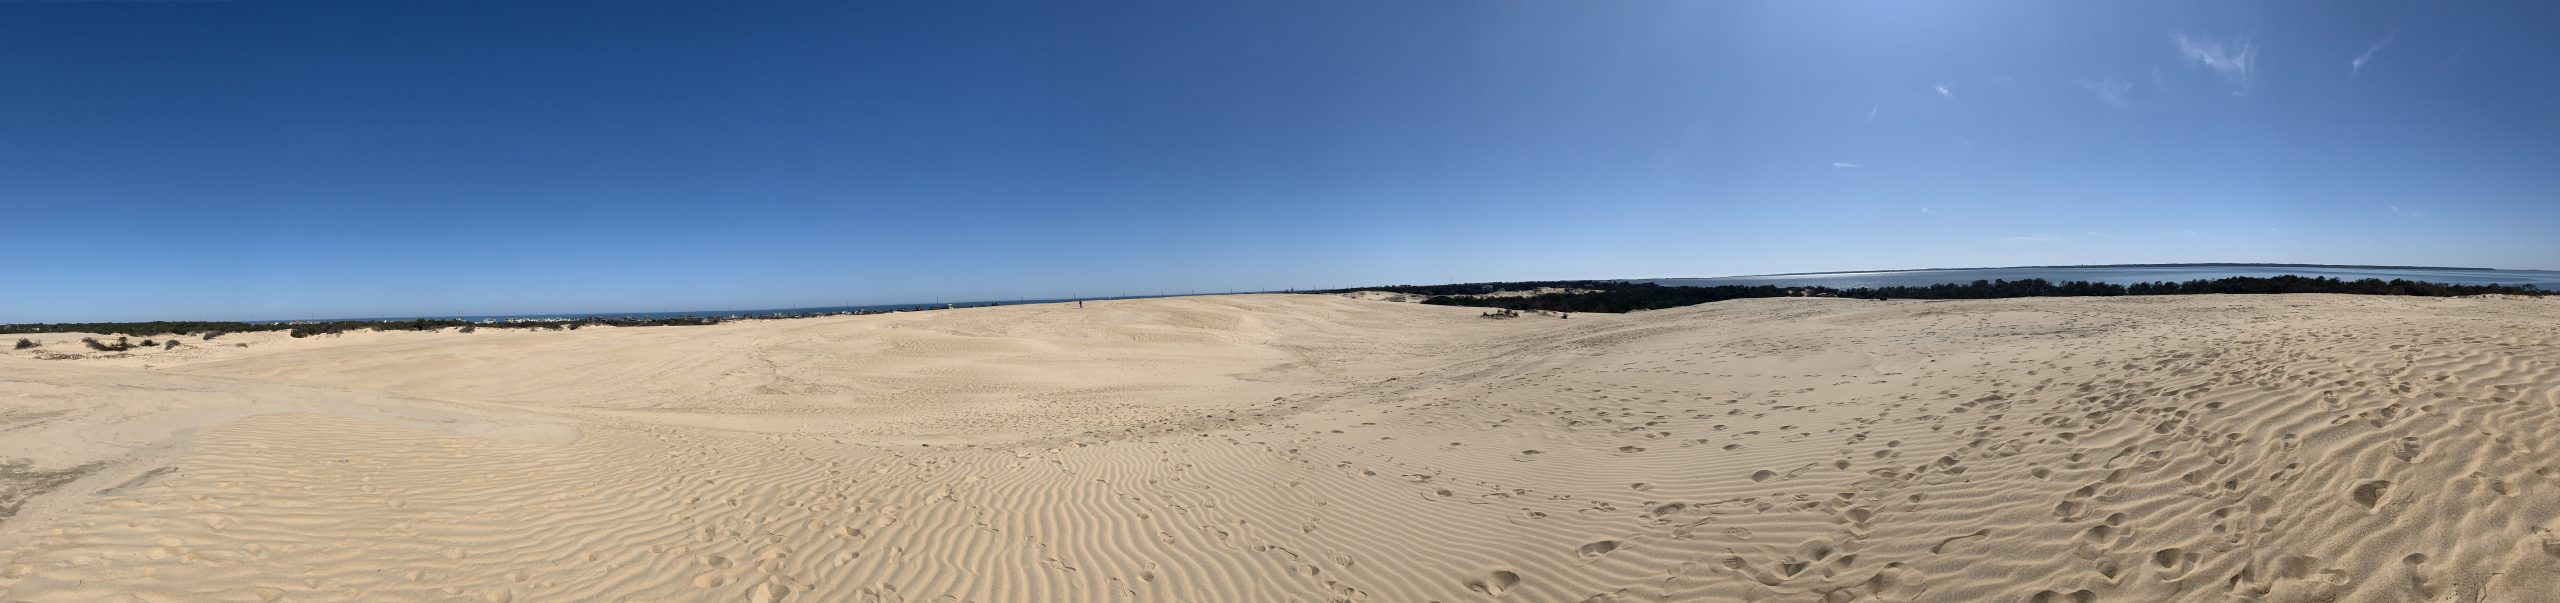 Visiting Jockey's Ridge State Park